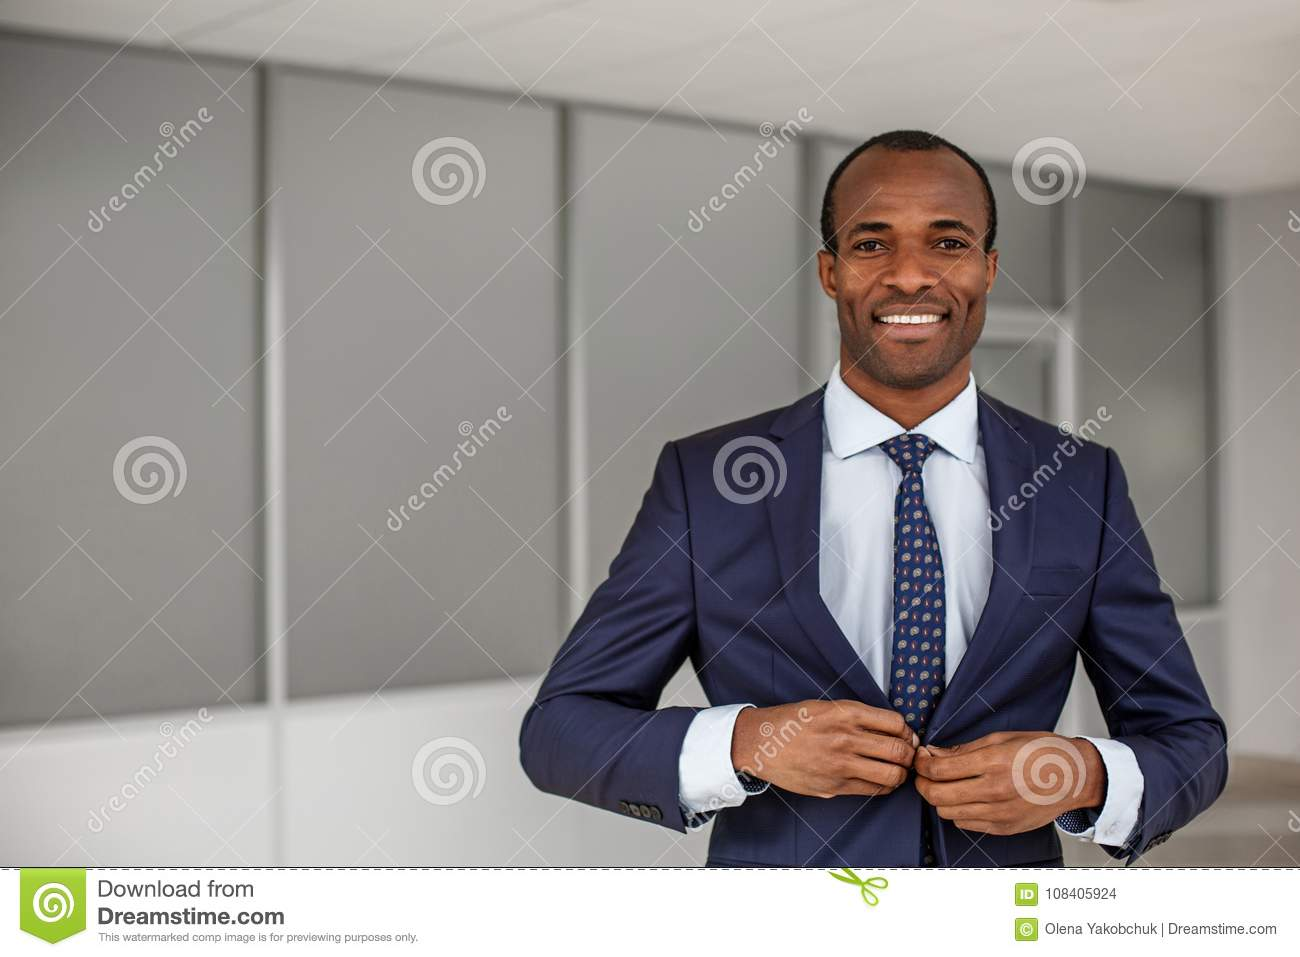 Elegant man is expressing gladness at work